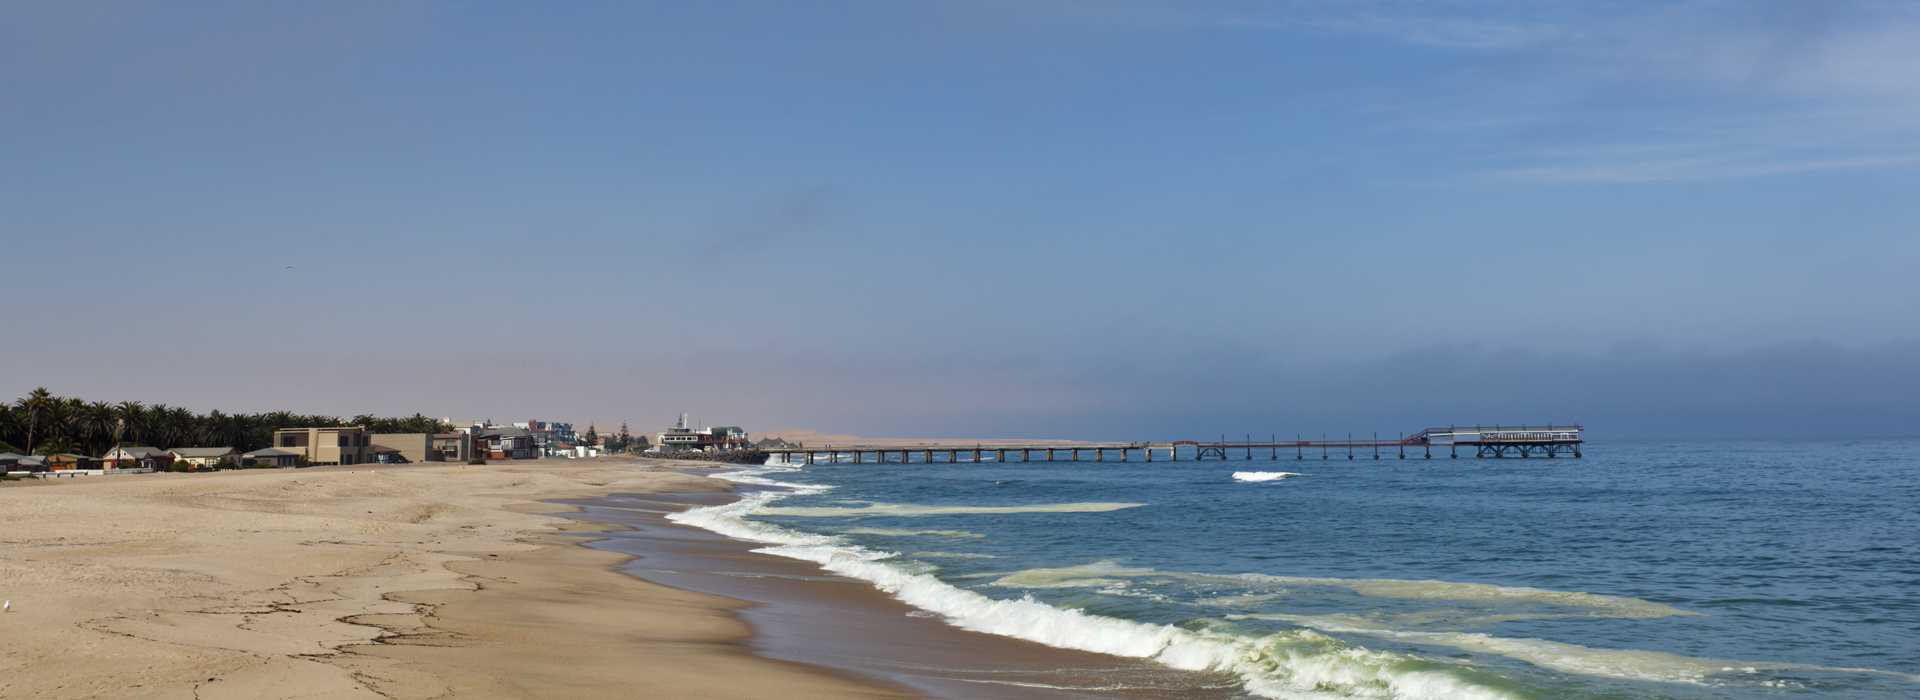 The Beach At Swakopmund, Namibia